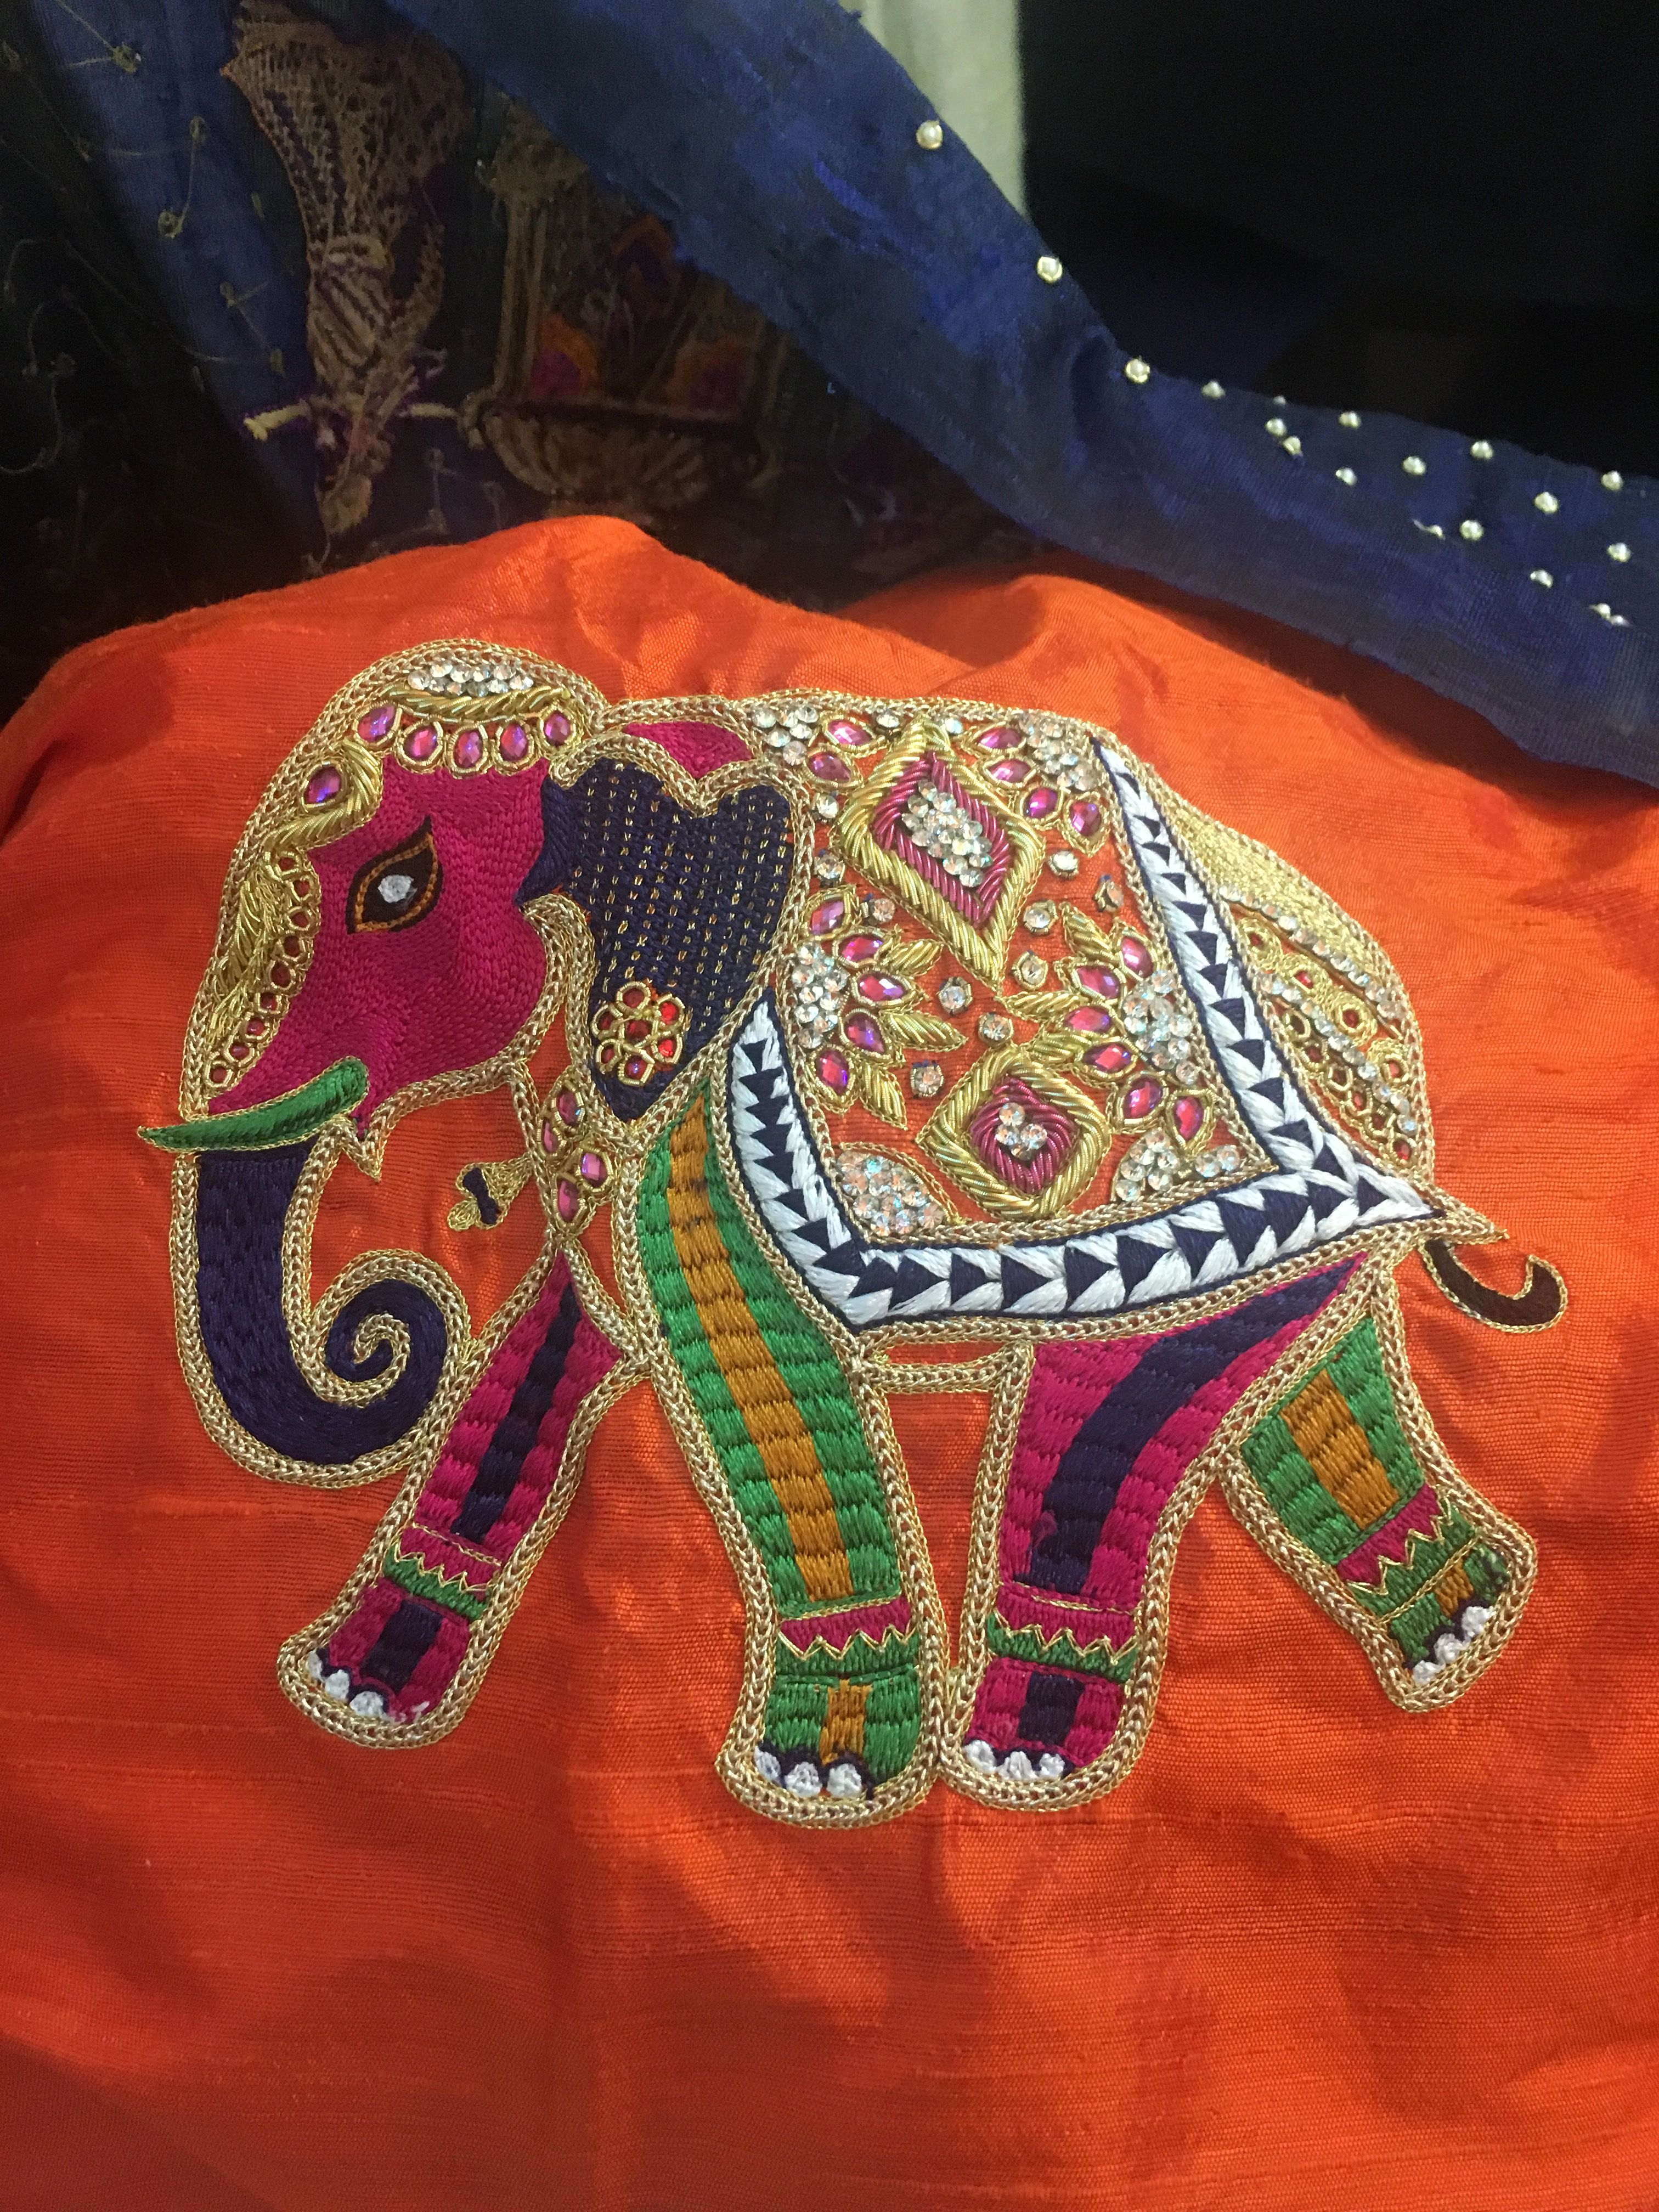 Elephant kee pinterest blouse designs embroidery and saree